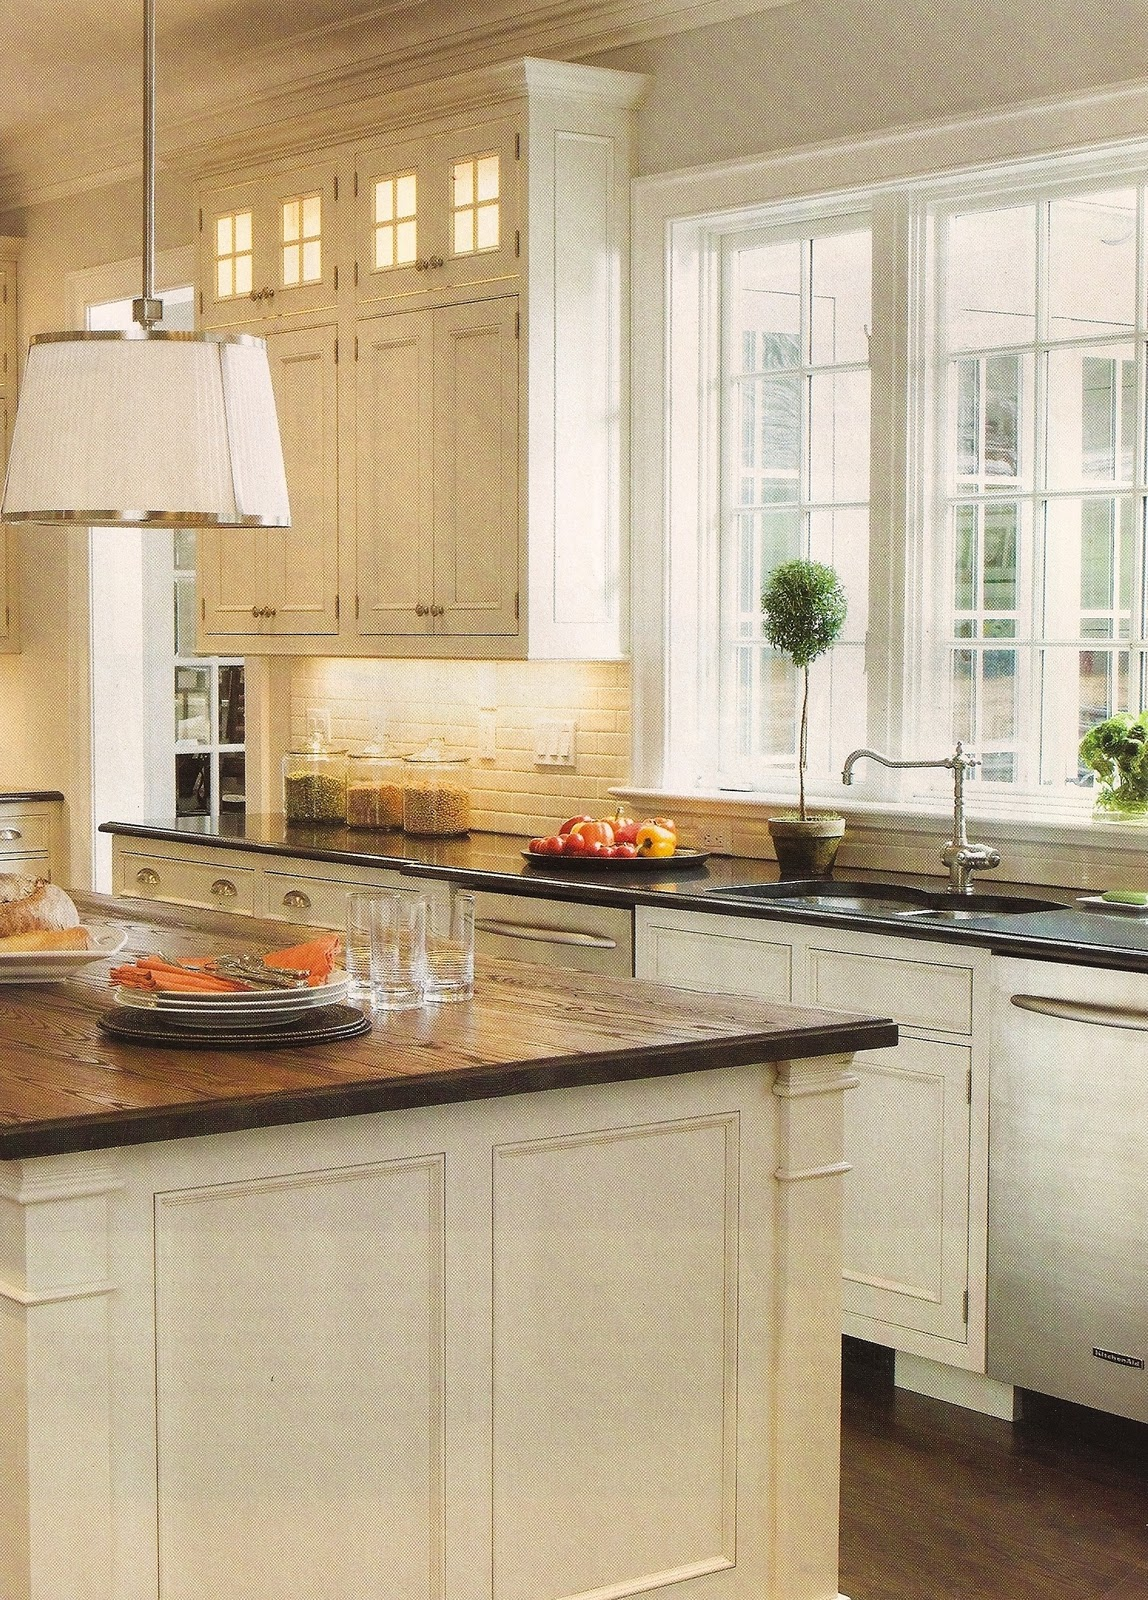 White Wood Kitchen Countertops